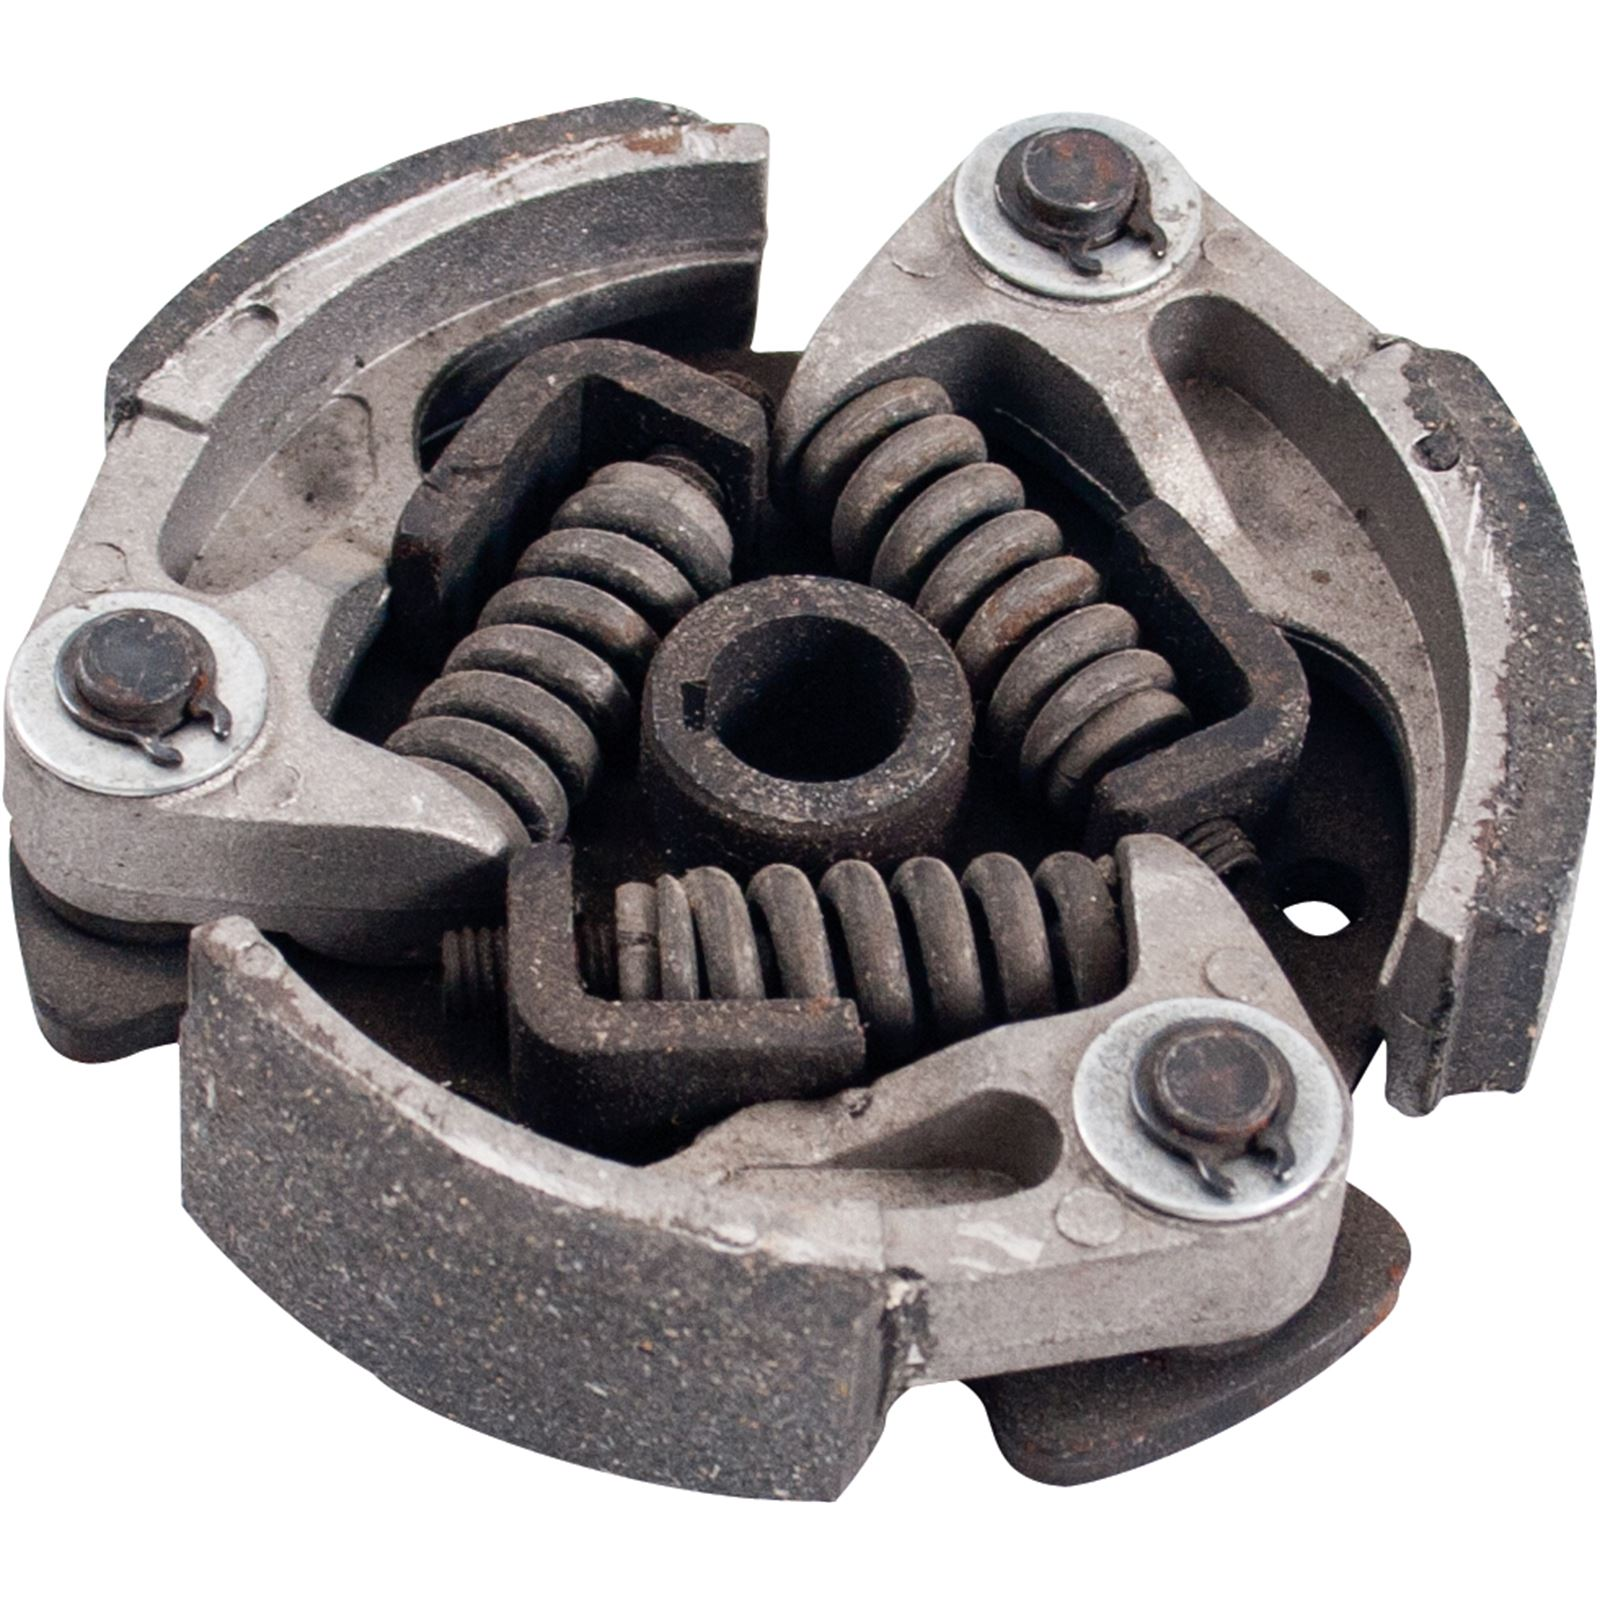 Outside 3-Leaf Complete Assembly Clutch w/Key Hole